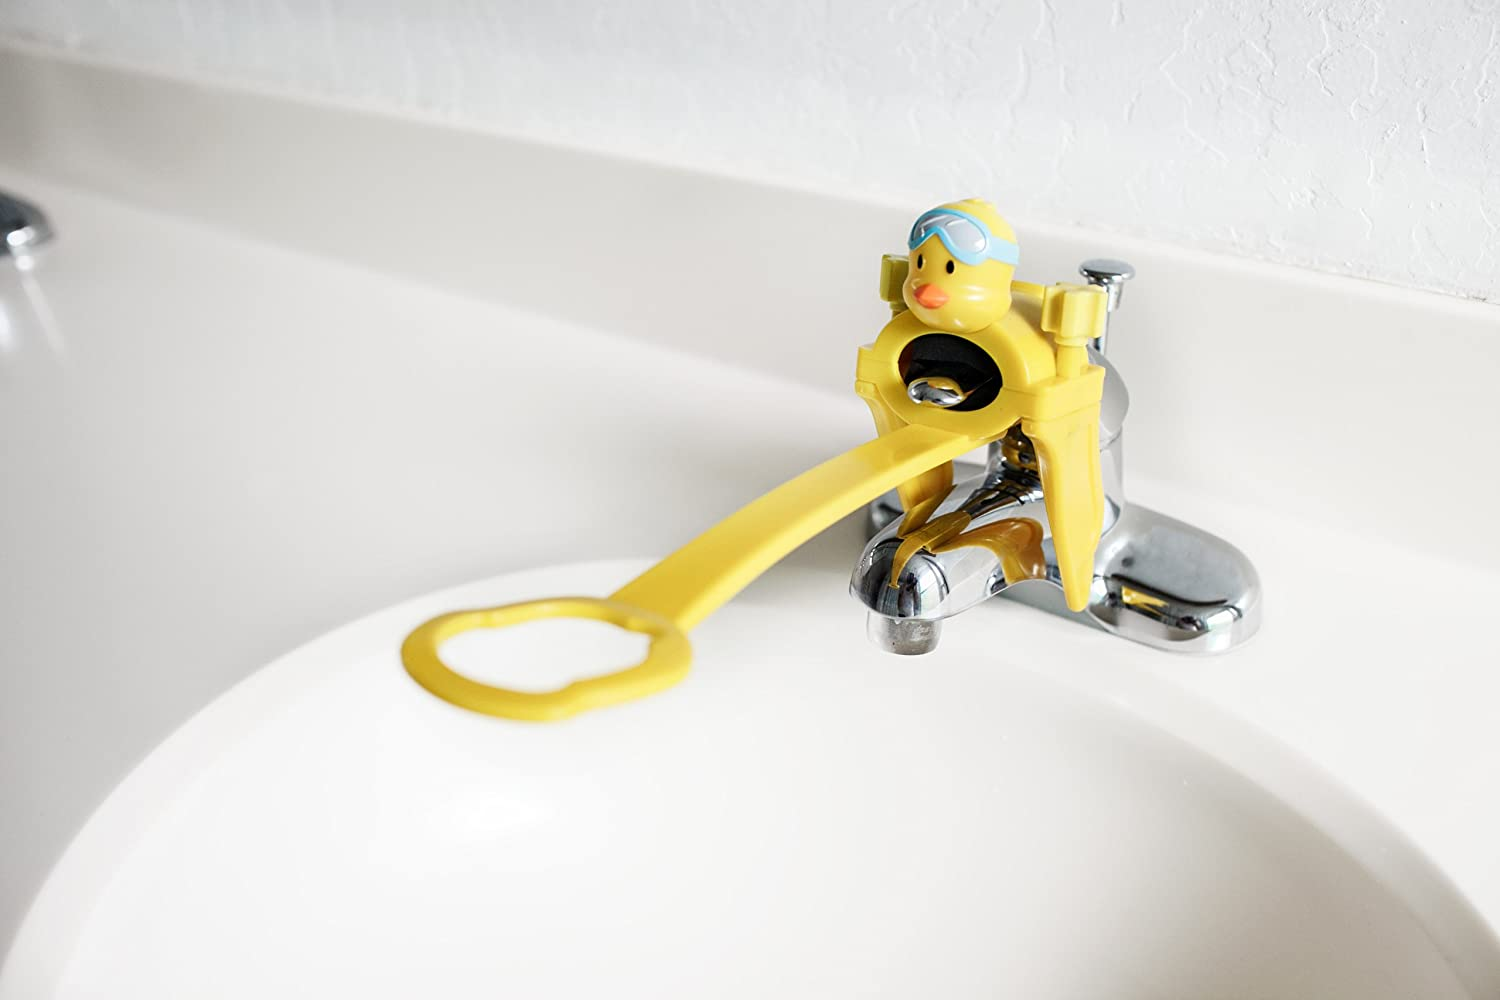 Amazon.com : Aqueduck Faucet Handle Extender. A Safe Fun and Kid ...